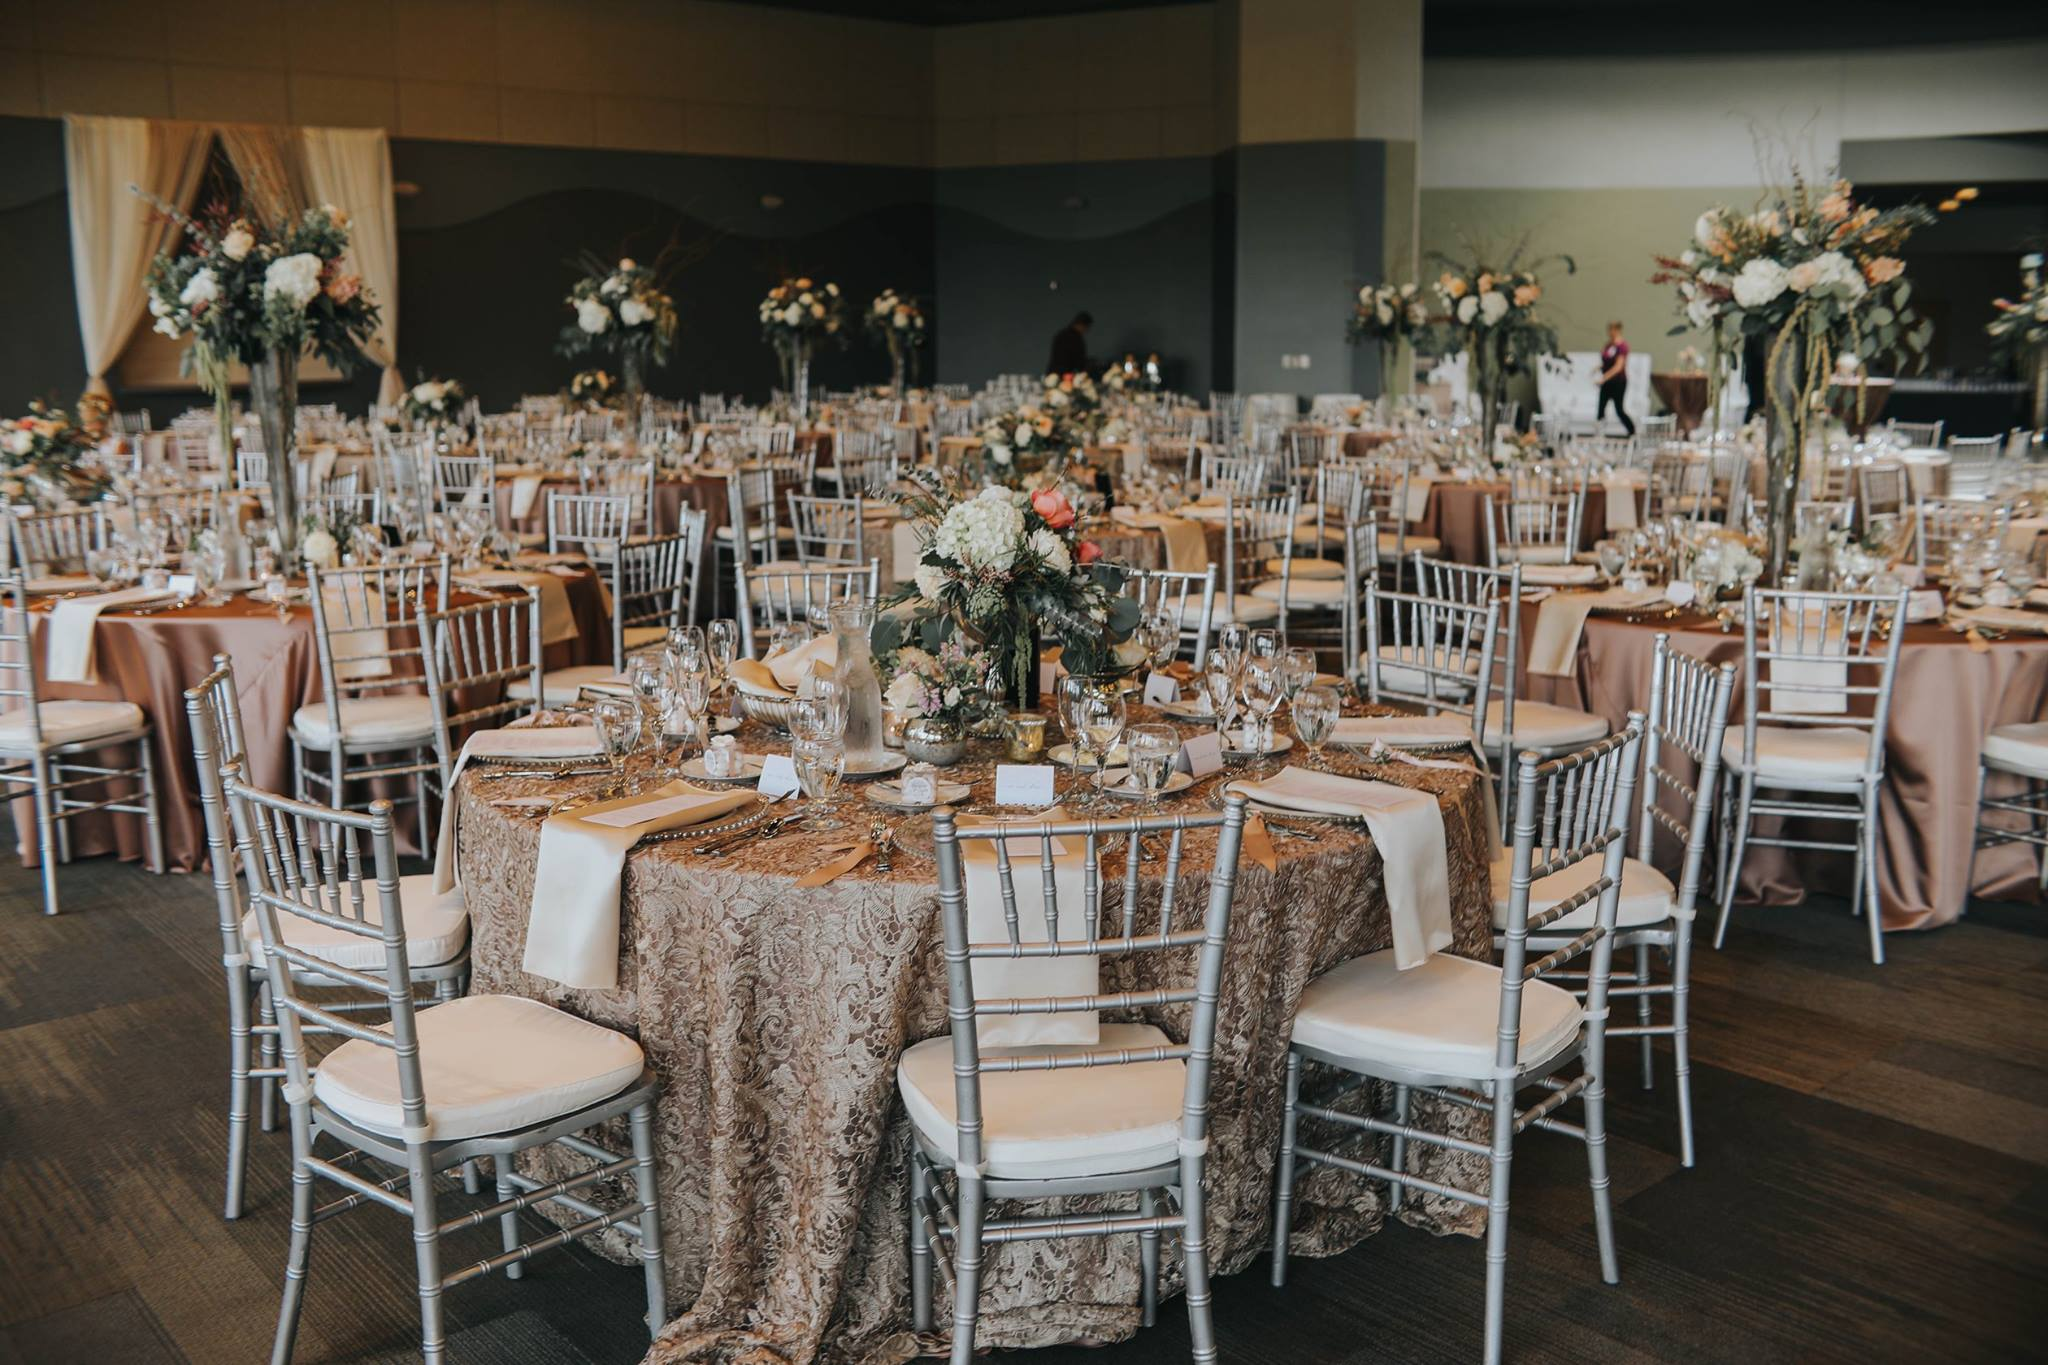 Reception Management - Keep vendors & guests on scheduleDistribute final payments and gratuities to vendorsPrevent and fix any problems that may arise during the eventCollect gifts and personal itemsCoordinate formal send-offEnsure room design is set up accordingly, complete as needed